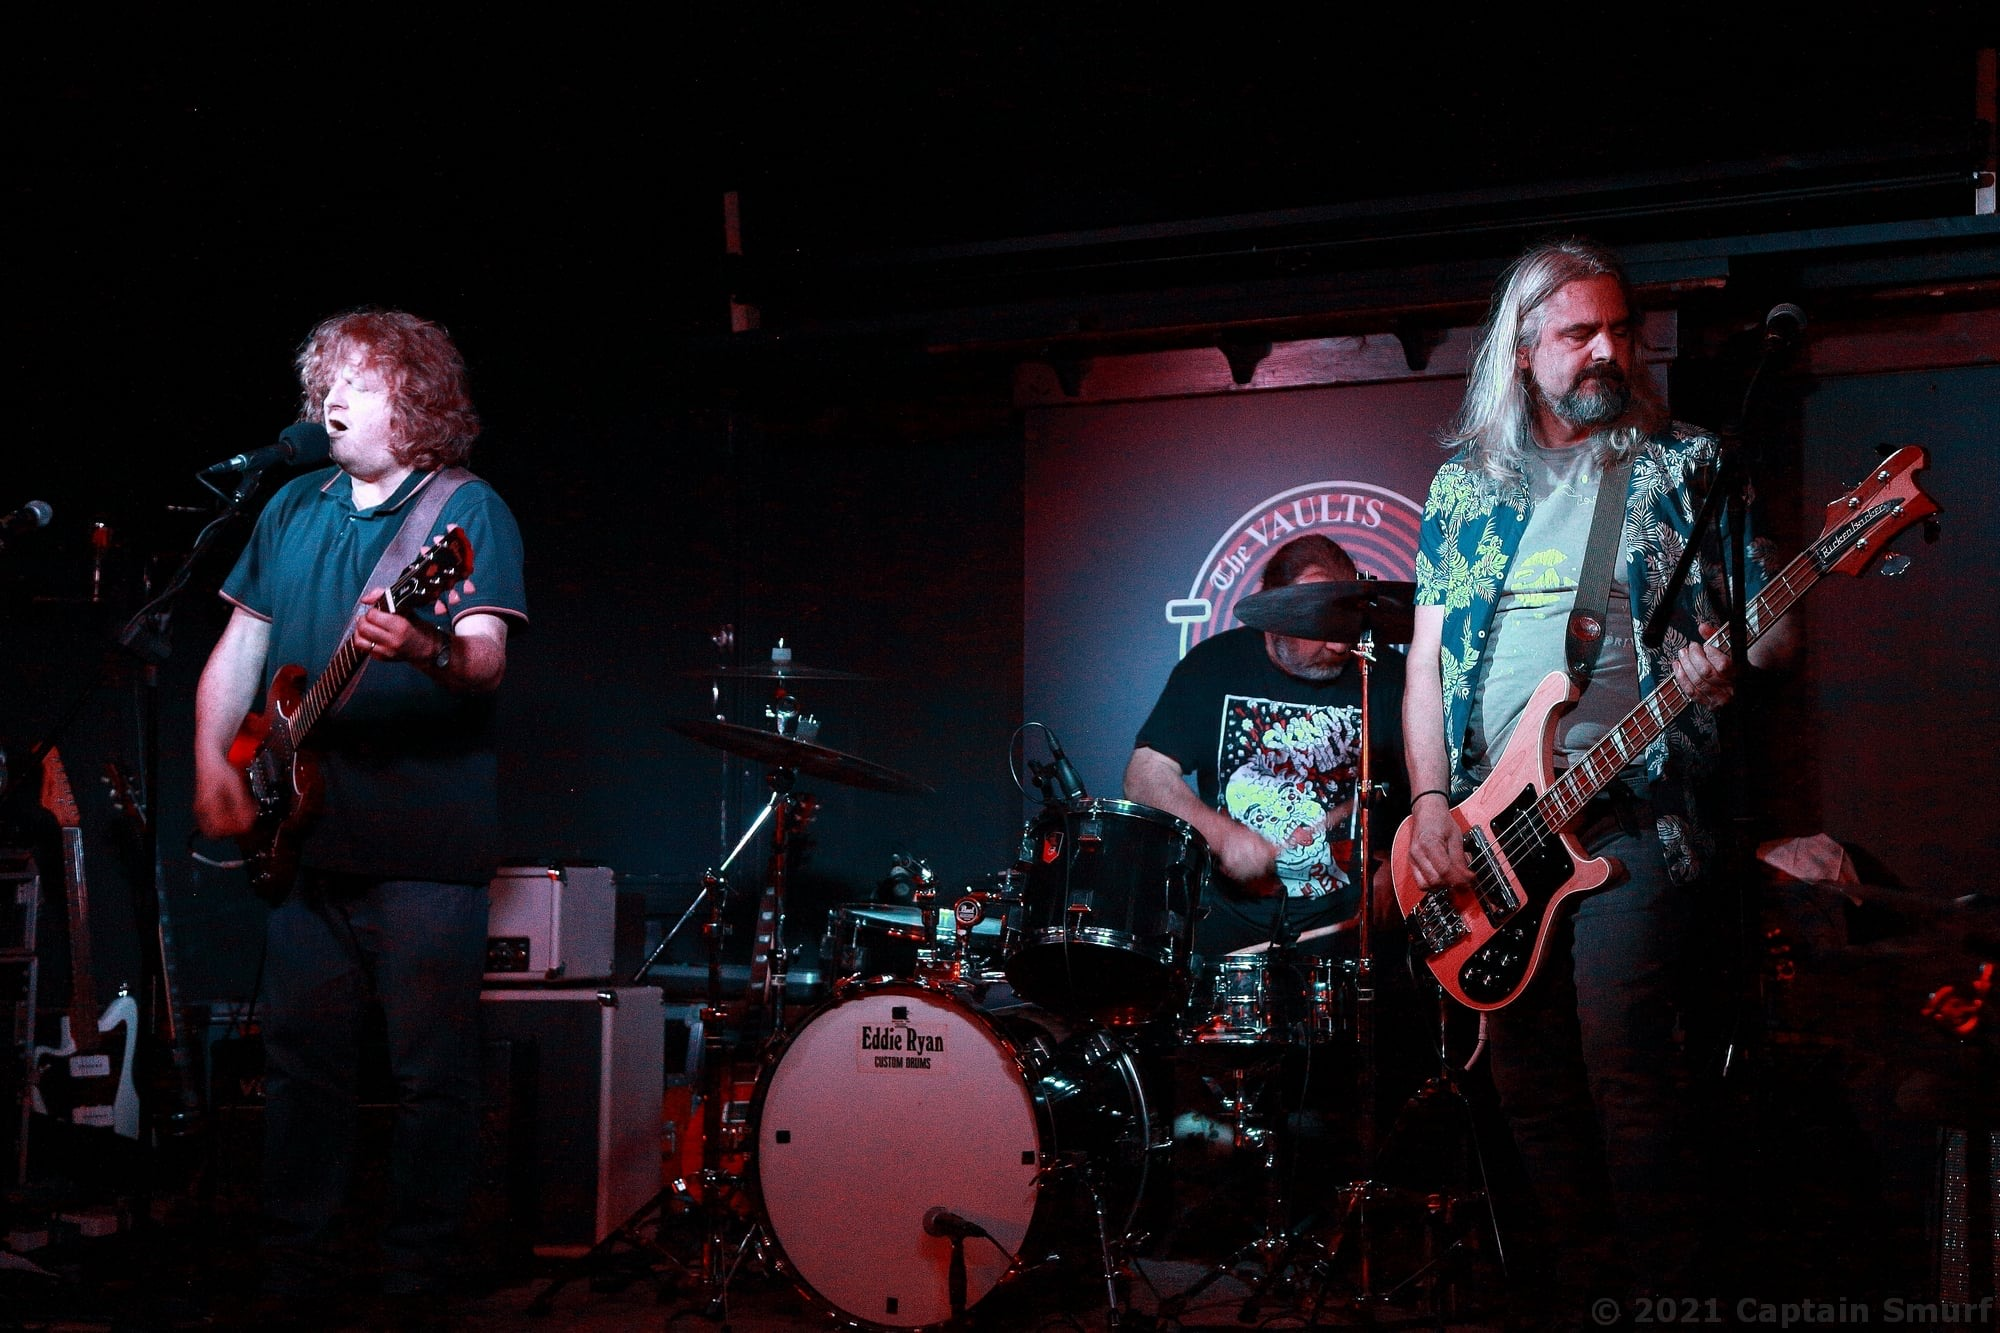 Percy live at the Victoria Vaults